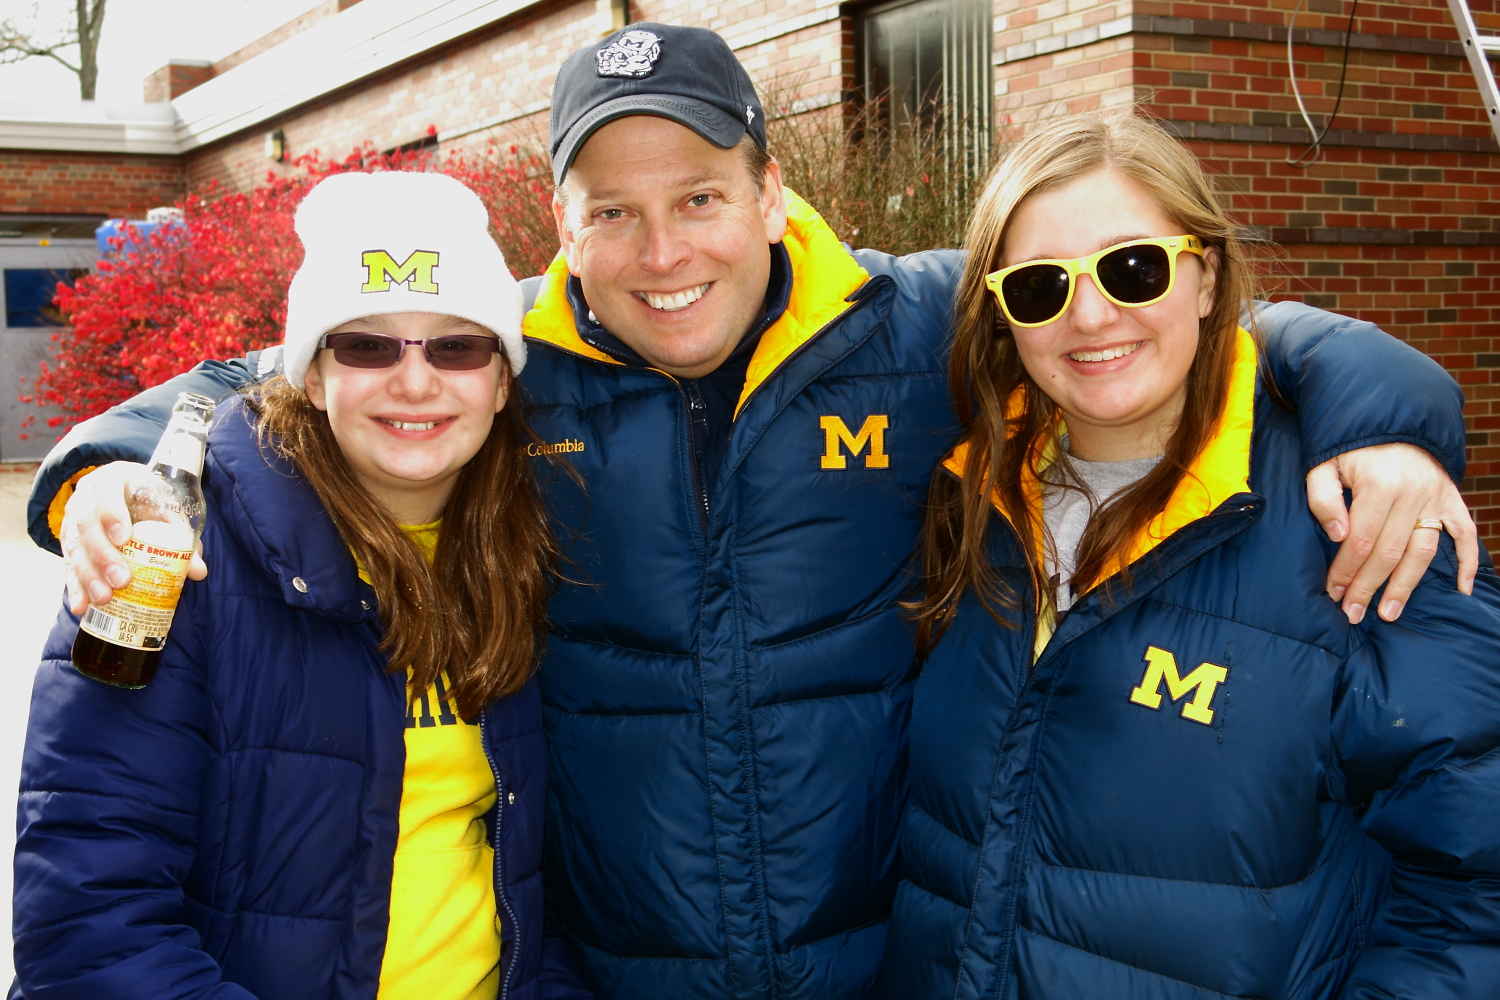 11/9/13 Michigan 13-Nebraska 17  : Uncle Stephen with Andrea and Bella during the Lumberjack Theme tailgate.